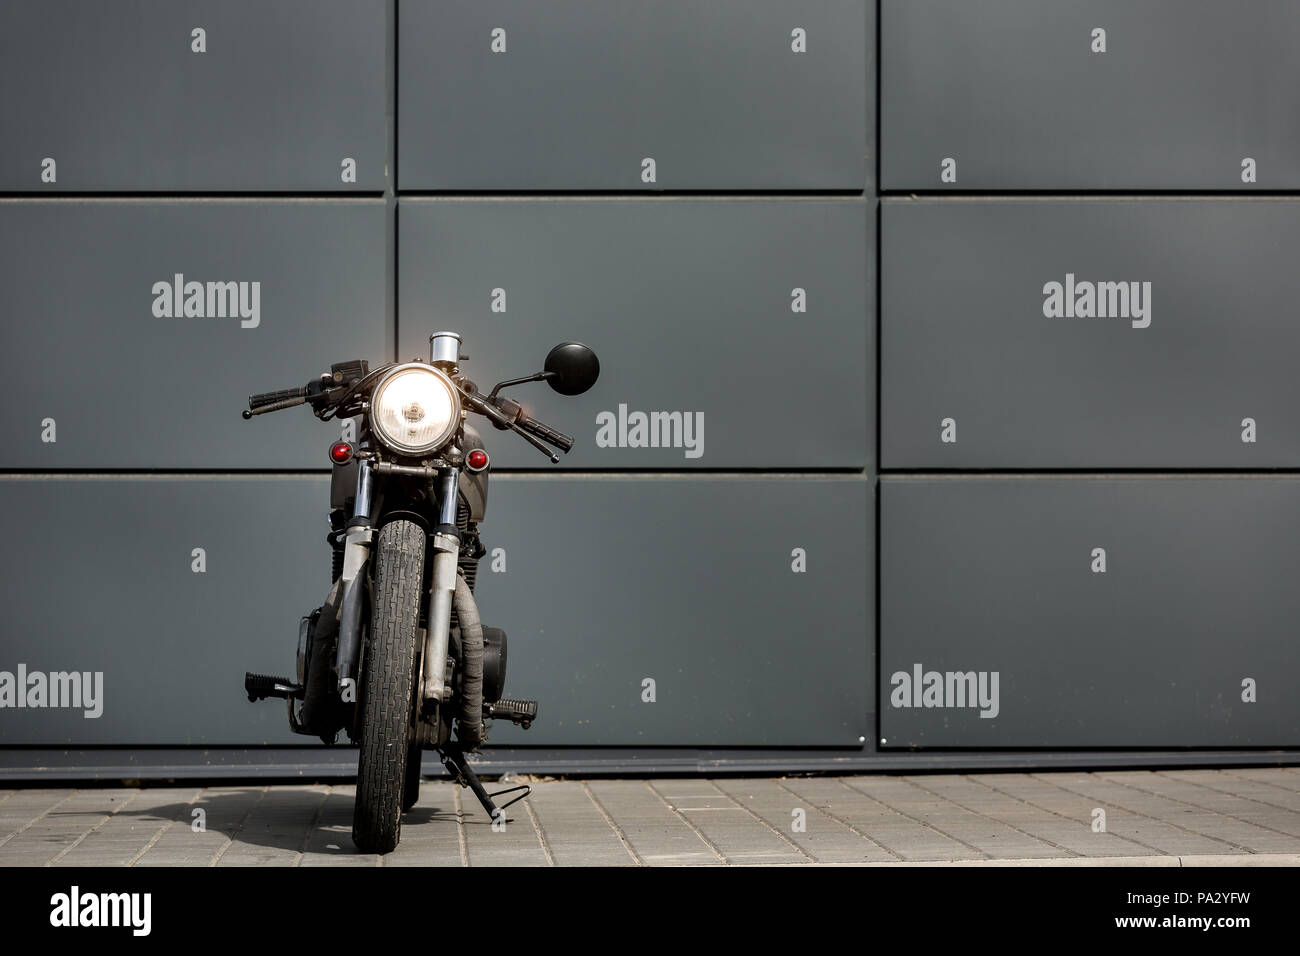 Custom motorcycle parking near gray wall of industrial building. Everything is ready for having fun driving the empty road on a motorcycle tour journe - Stock Image